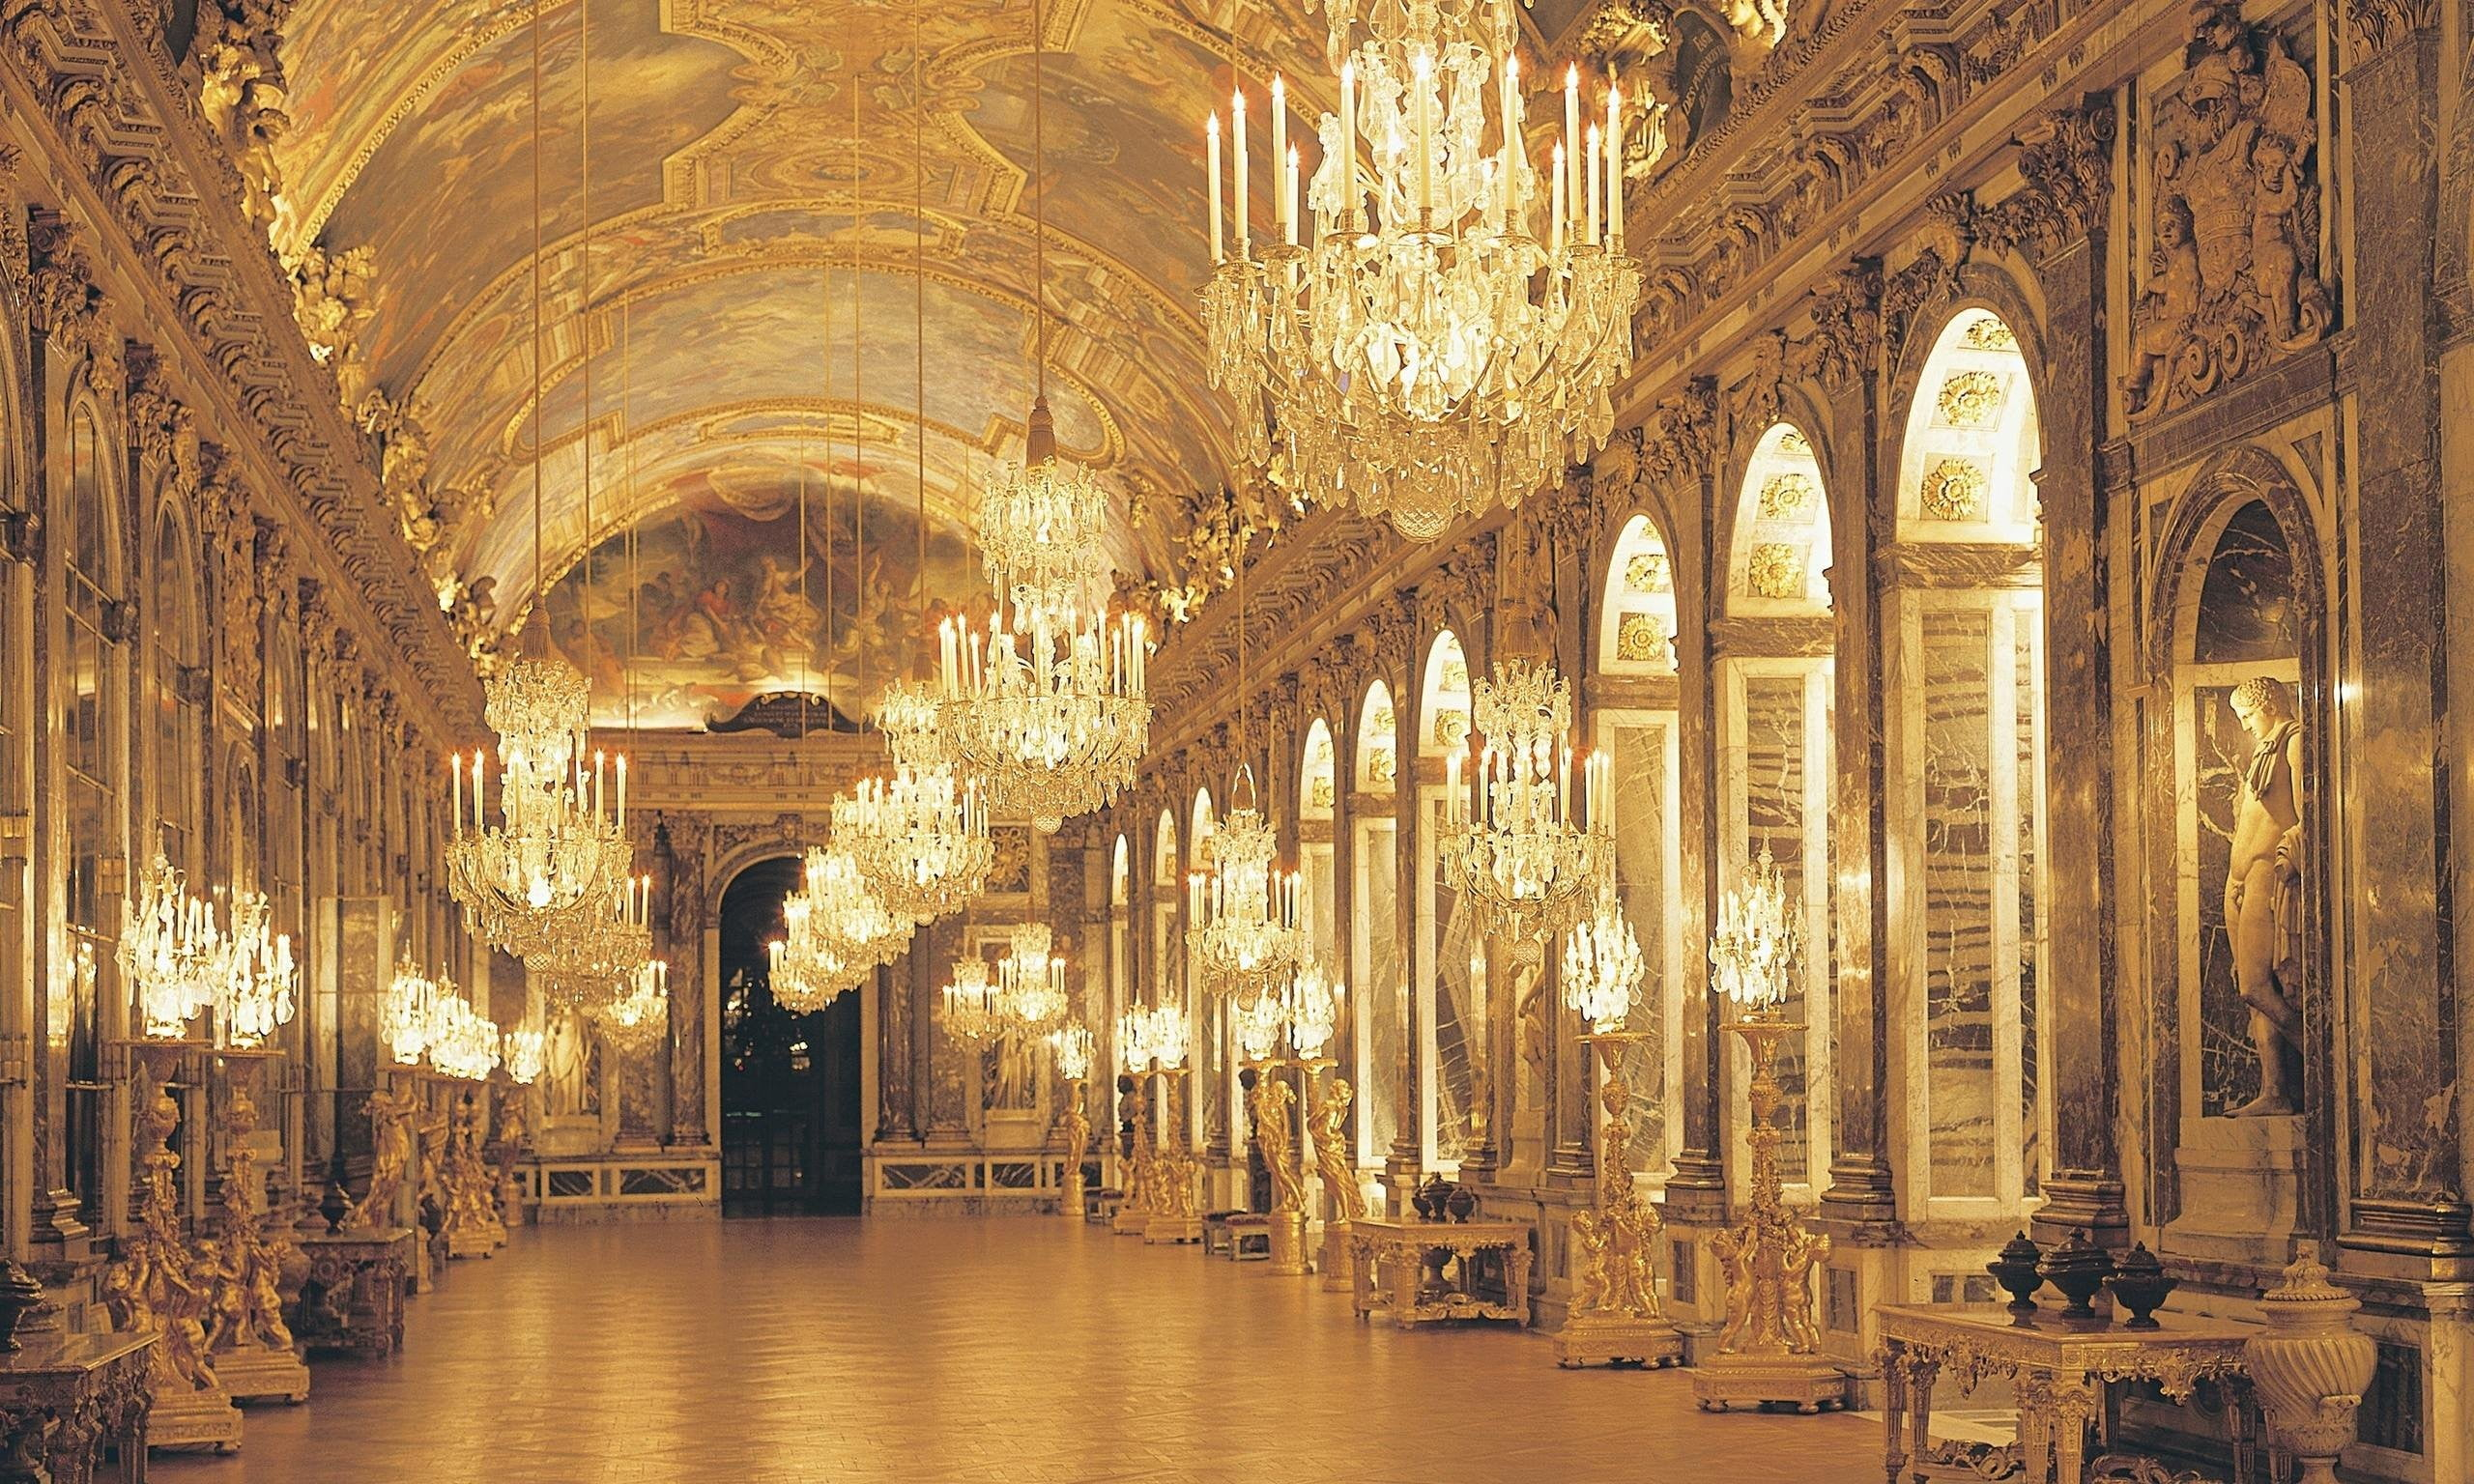 Clear crystal chandelier architecture France chateau Palace of 2560x1536